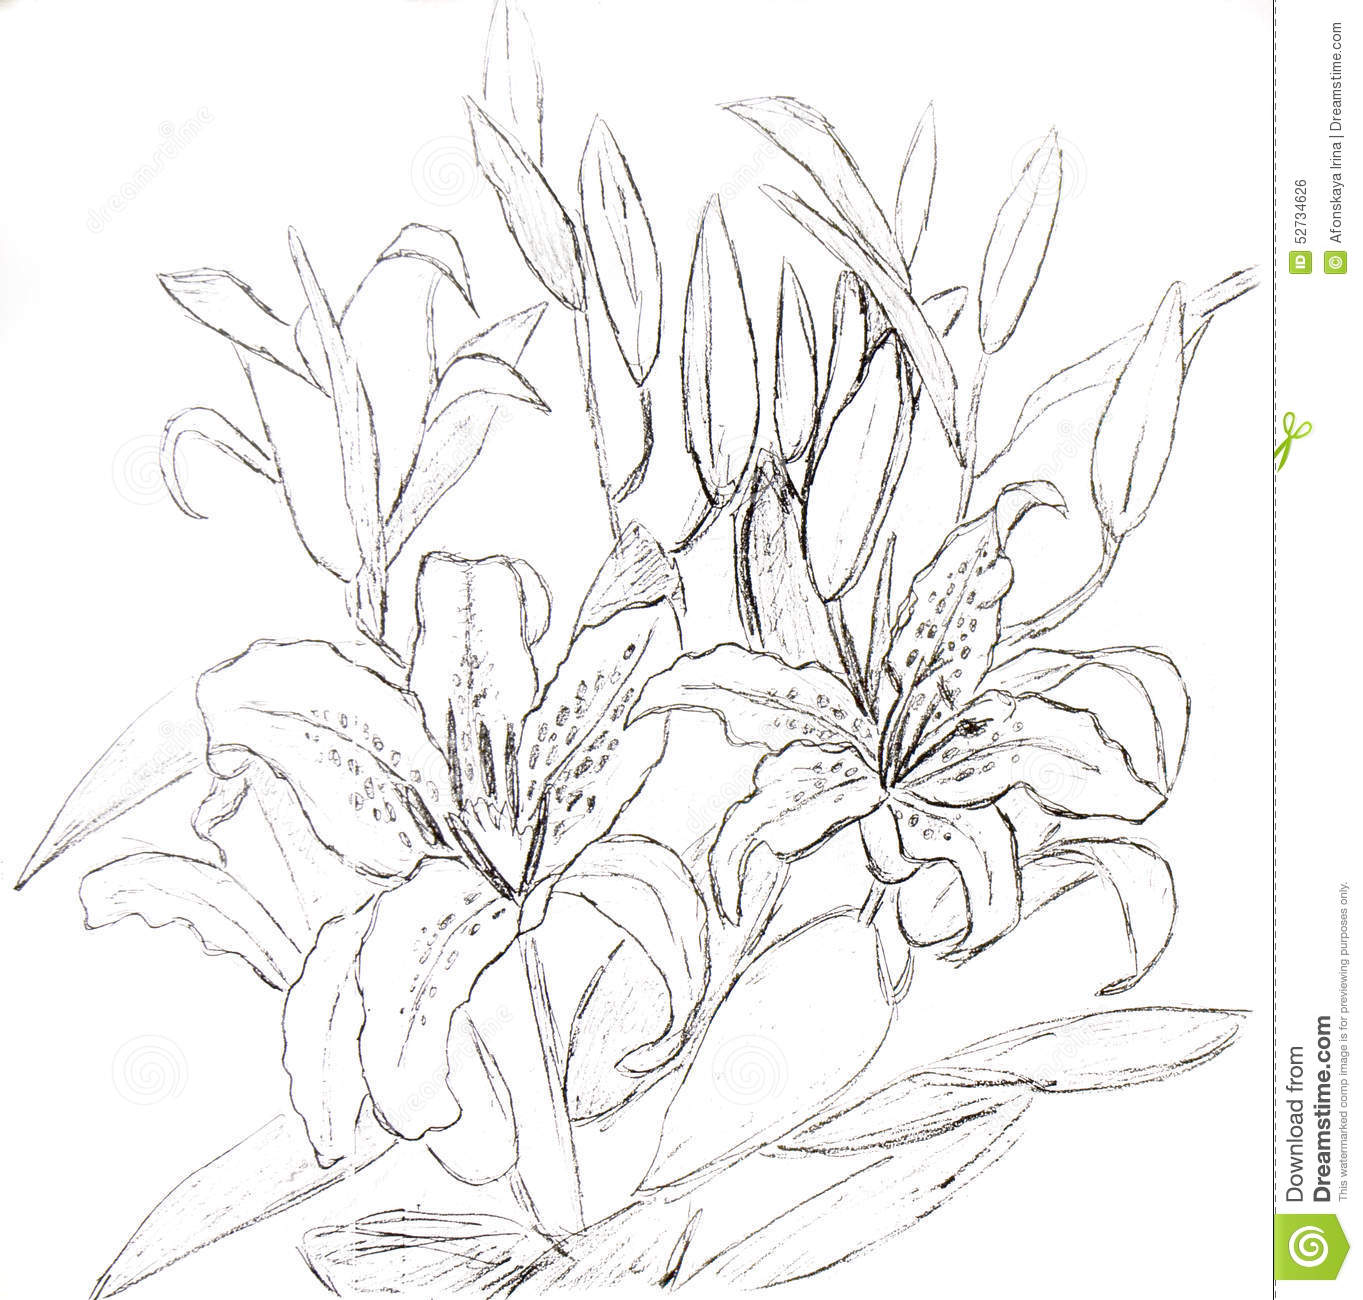 Lilies graphics svg library library Lilies, Graphics Stock Illustration - Image: 52734626 svg library library